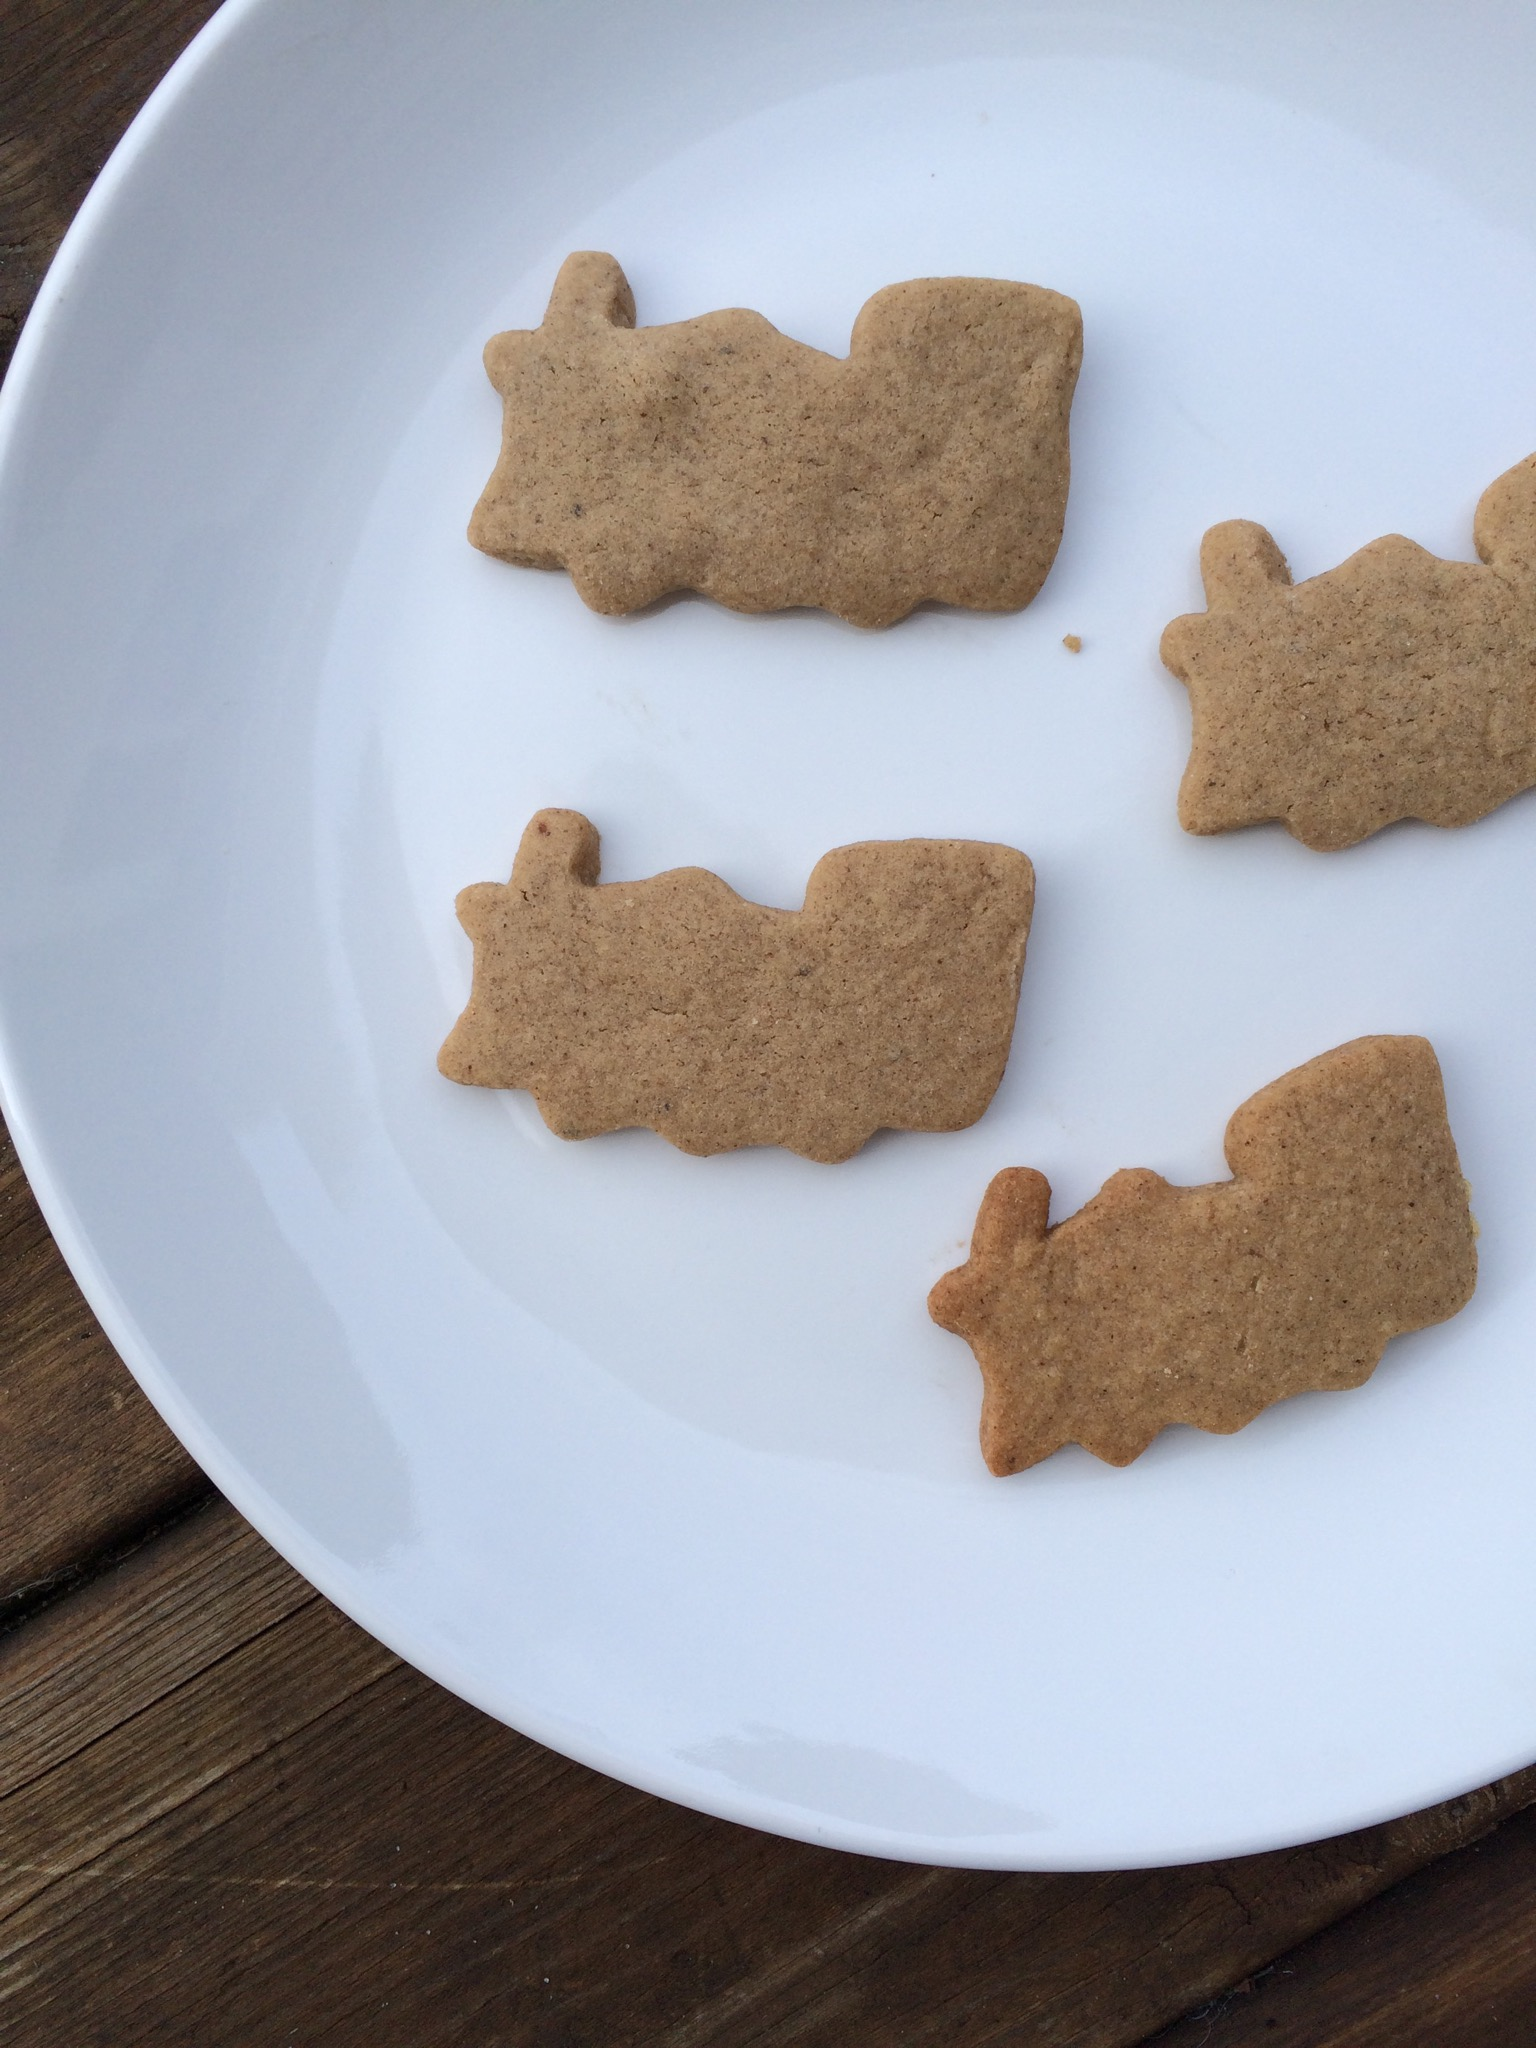 speculaas cookies (Dutch Christmas cookies)